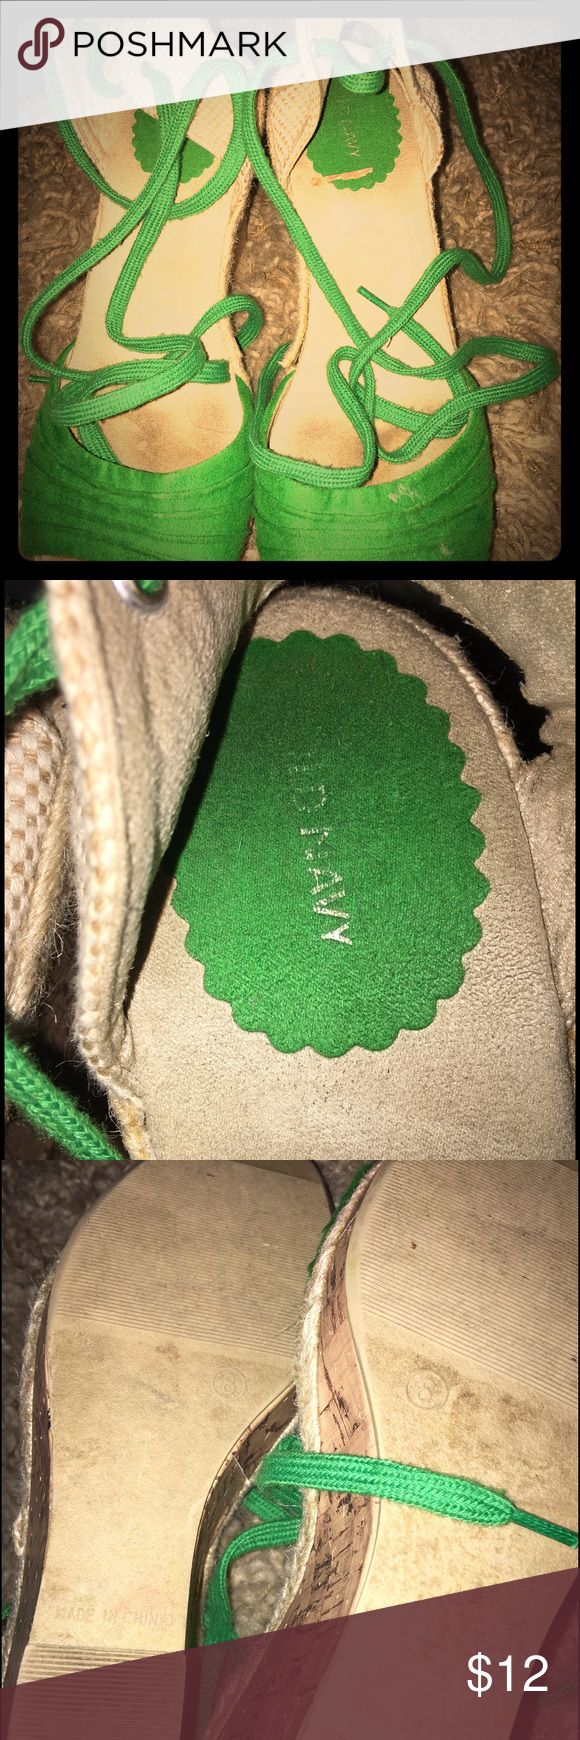 Old navy wedge shoes Have some wear to the inside where the feet go but the shoe itself is in good condition. They are a kelly green color and have a shoe lace that ties at the ankle! This is a wedge shoe Old Navy Shoes Wedges